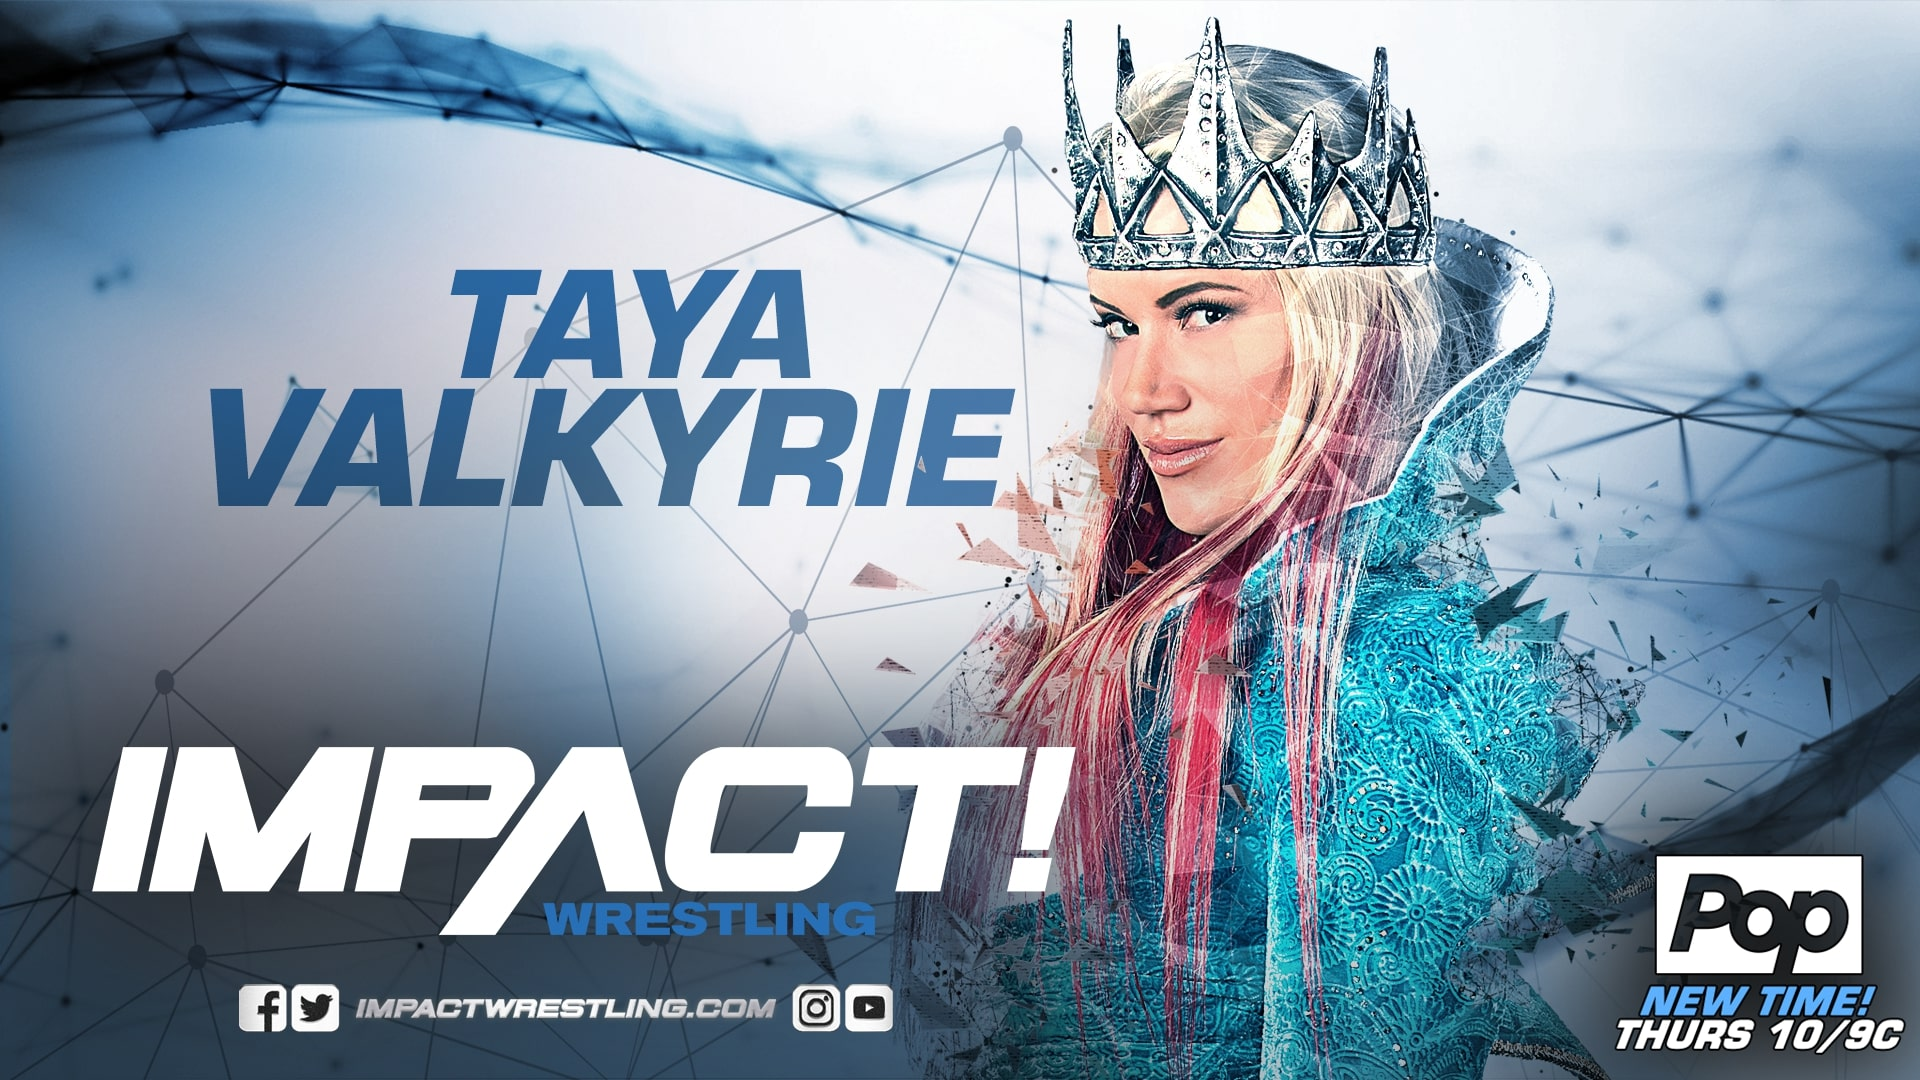 My 1-2-3 Cents Episode 207: Taya Valkyrie